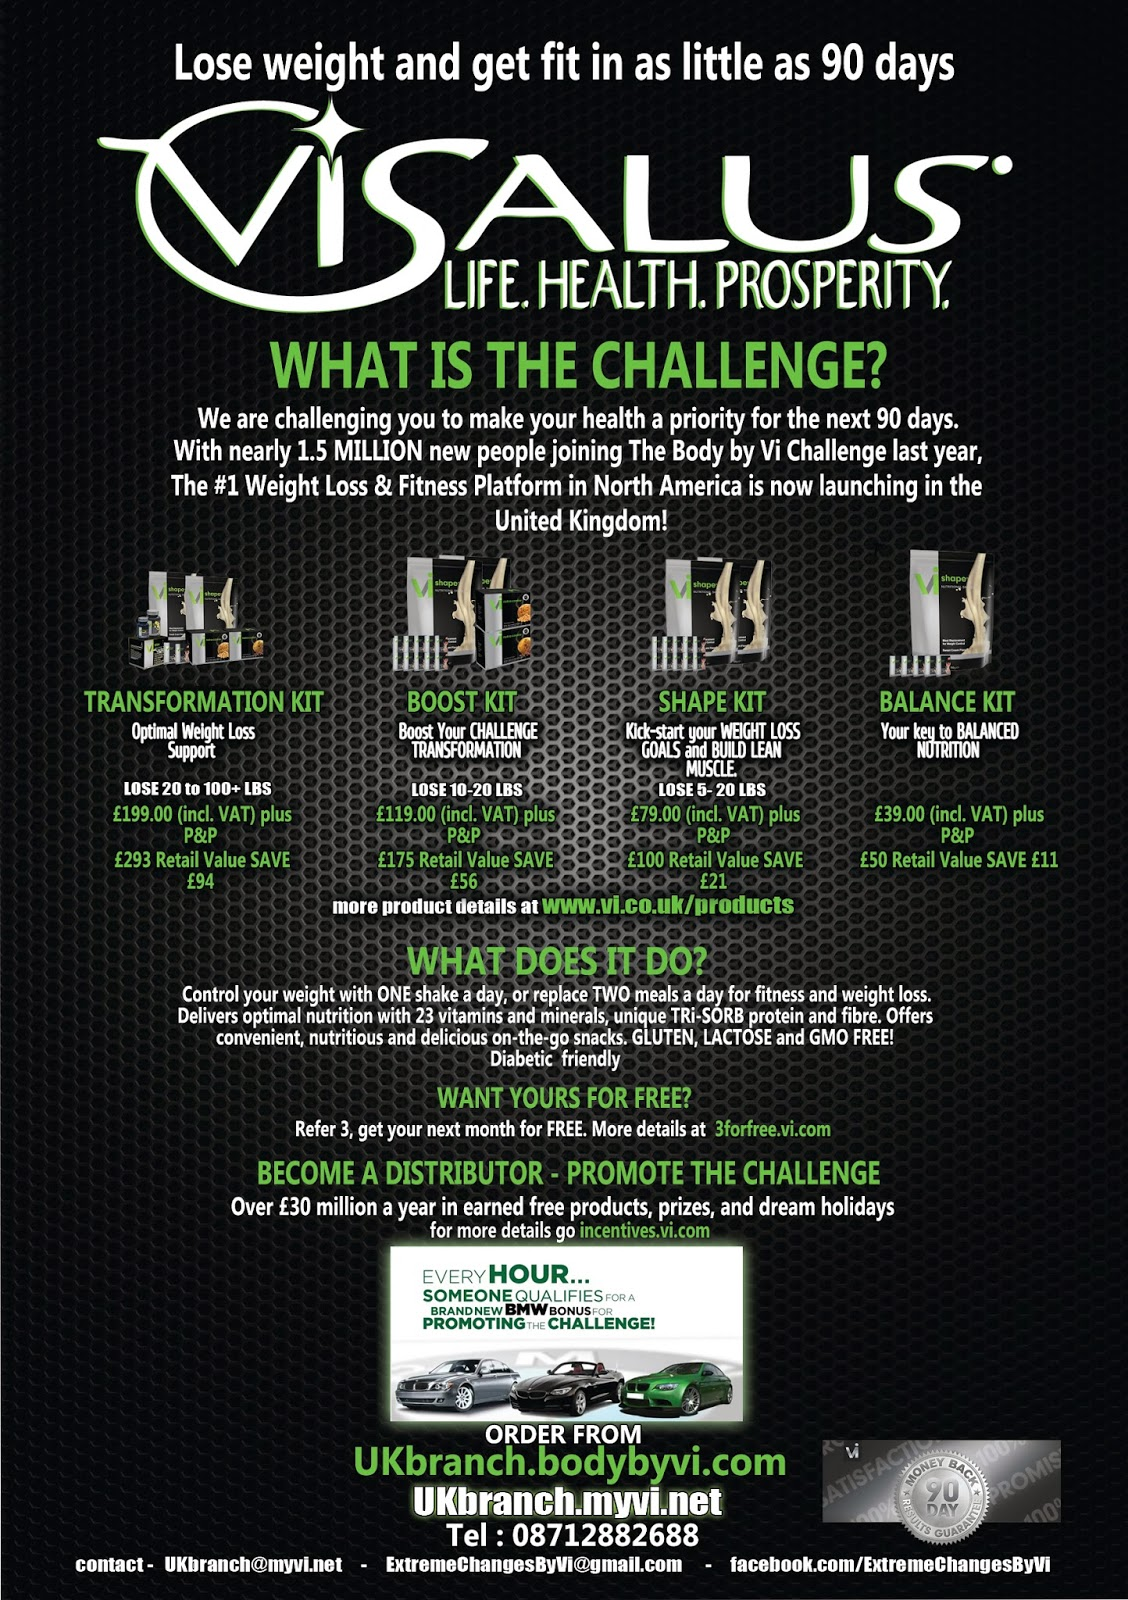 1 stop design and print visalus flyer visalus flyer reheart Choice Image